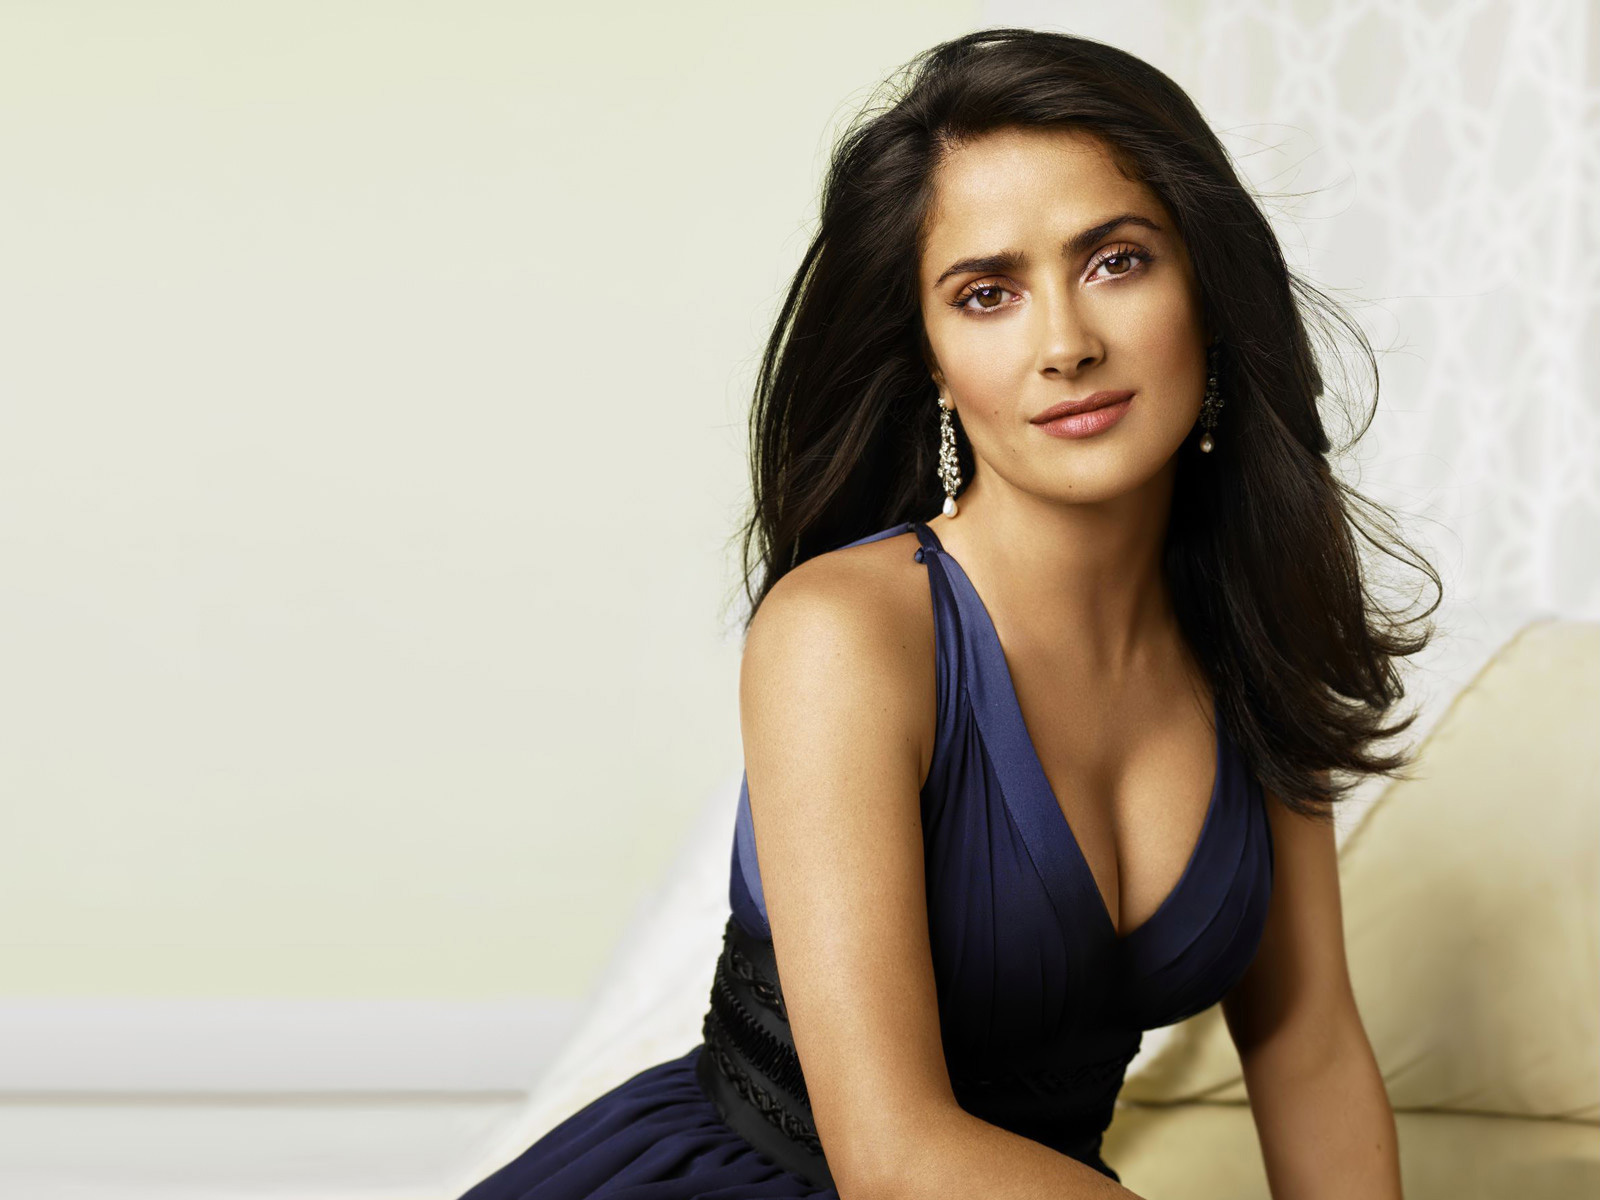 Salma Hayek Mexican Actress 257.87 Kb